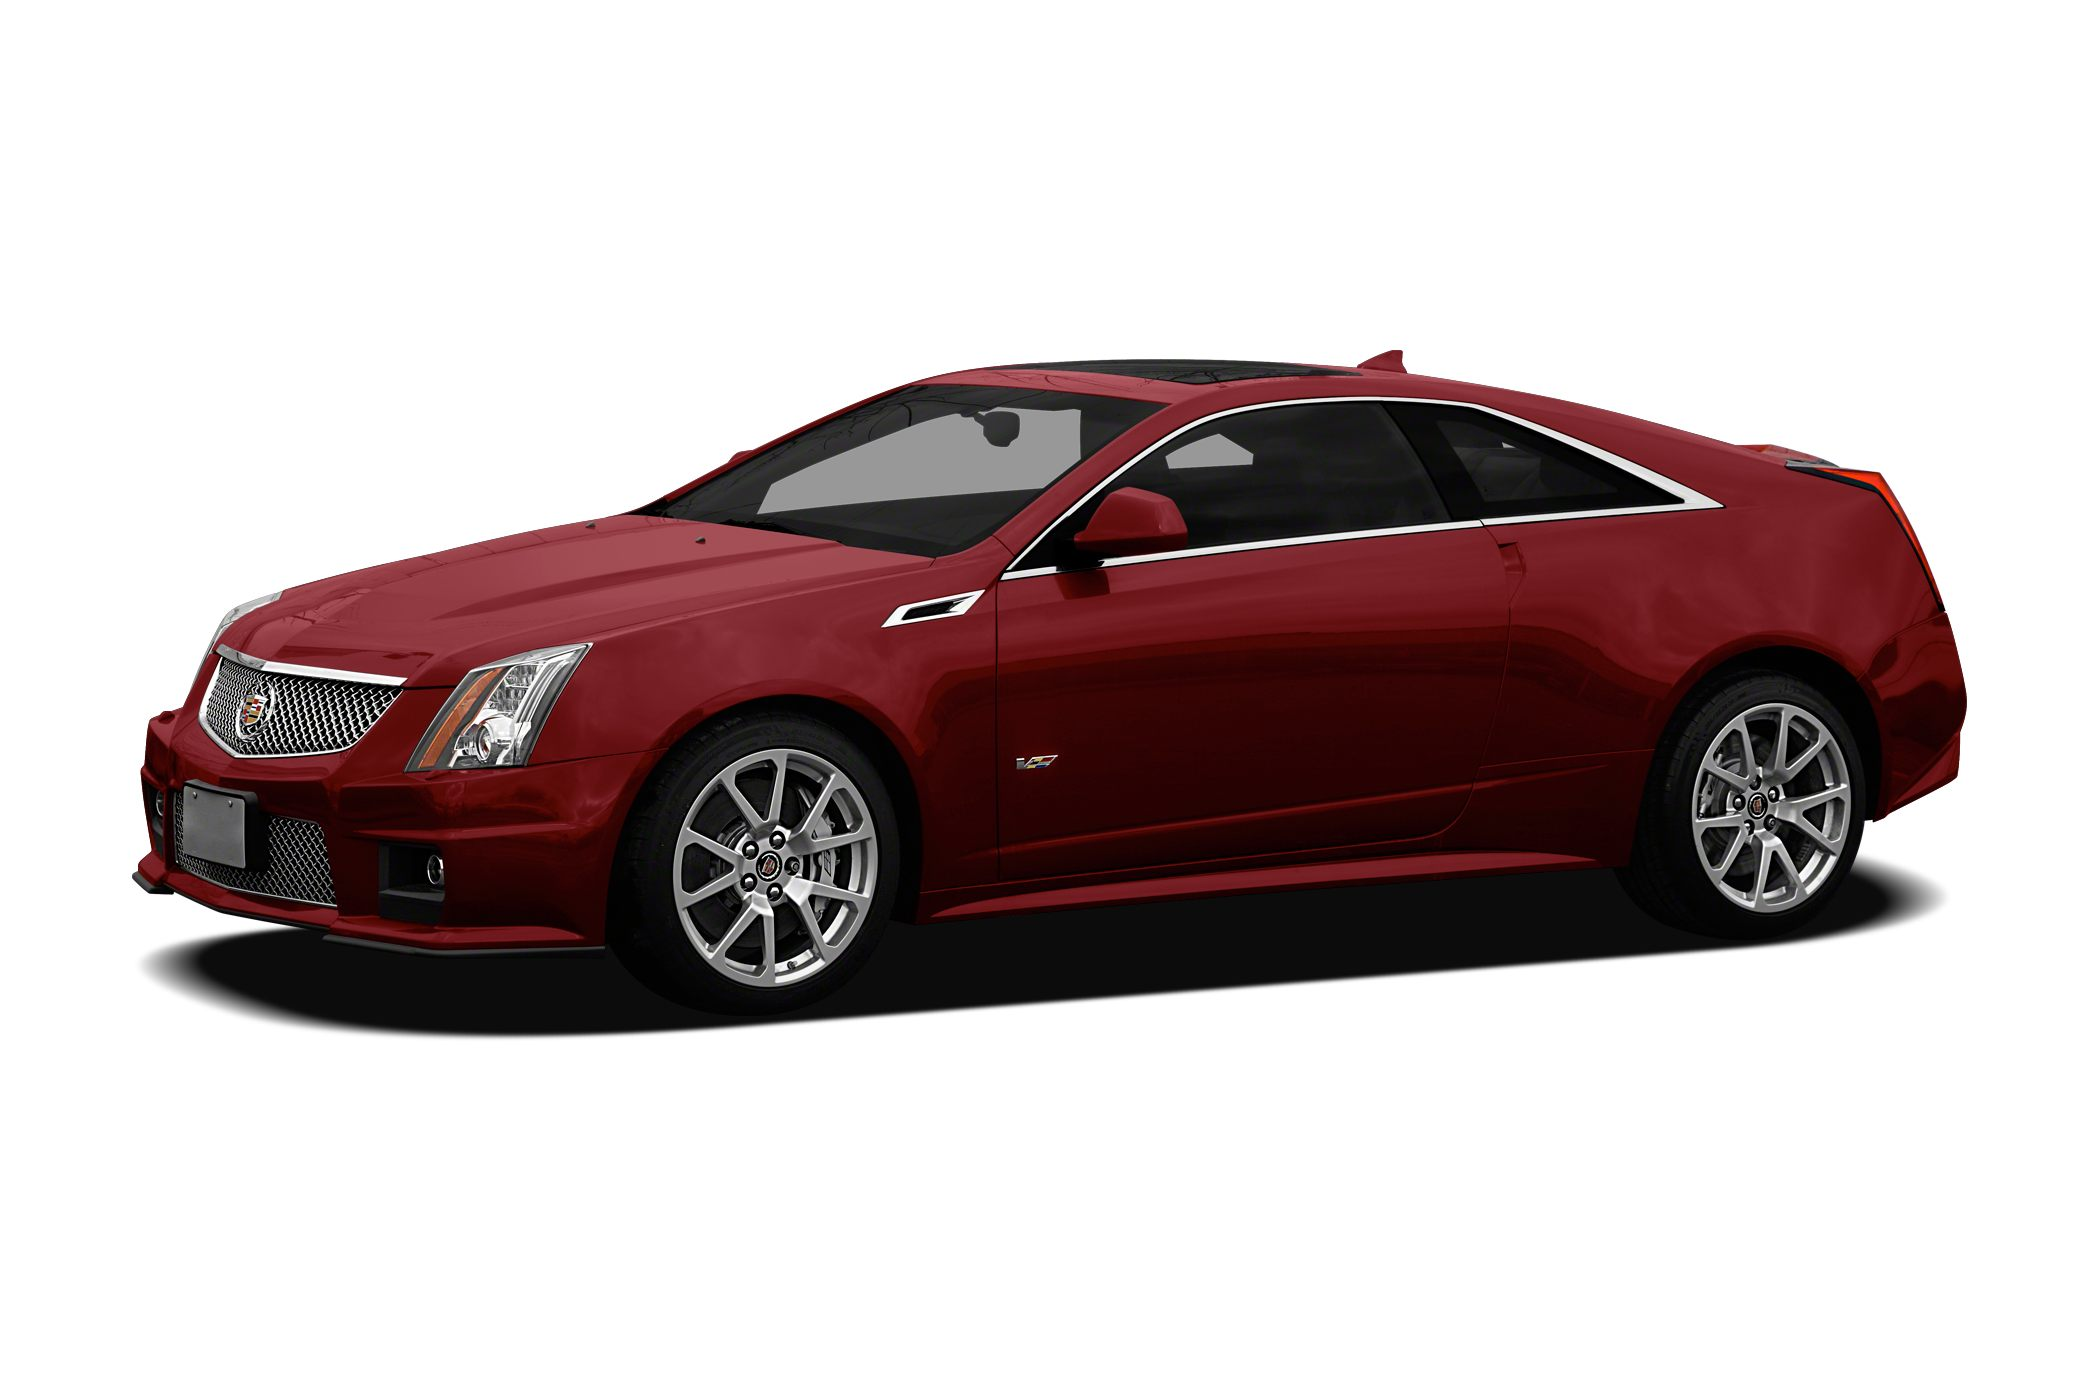 2011 Cadillac CTS-V